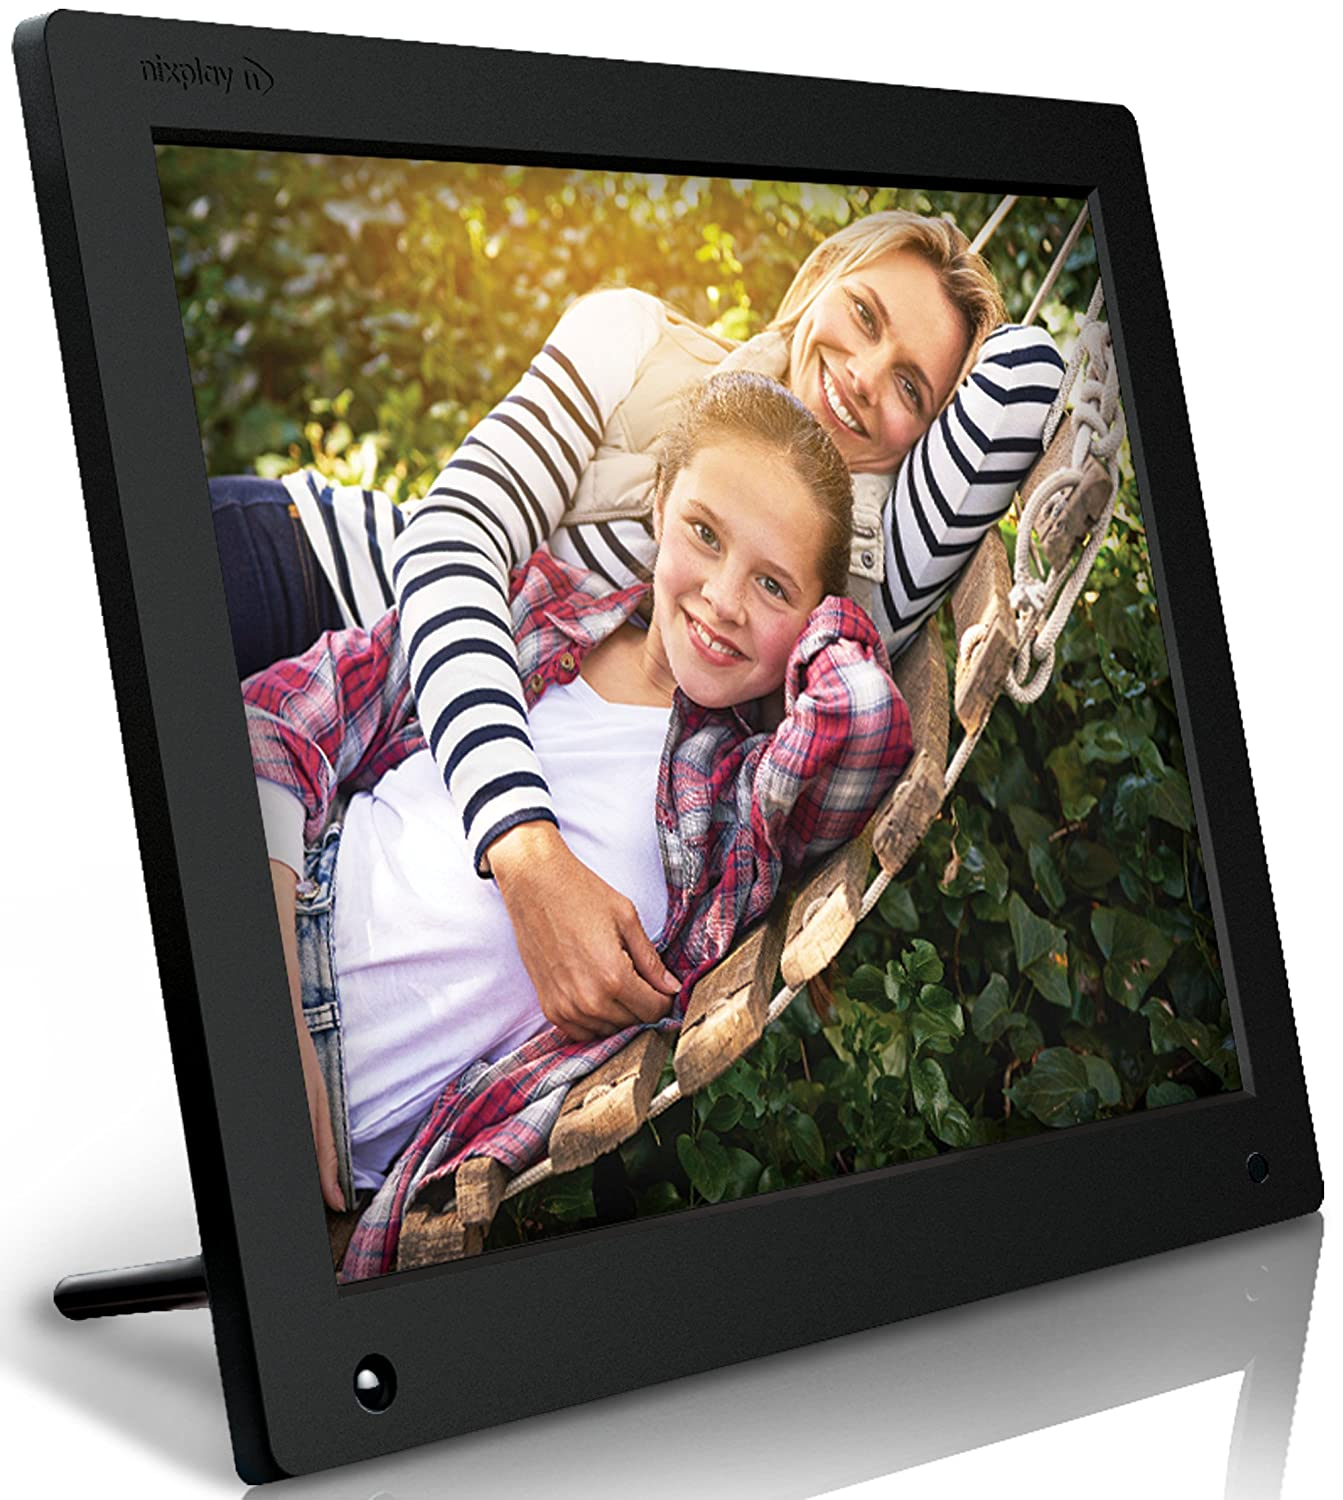 Amazon nixplay original 15 inch wifi cloud digital photo amazon nixplay original 15 inch wifi cloud digital photo frame iphone android app email facebook dropbox instagram picasa w15a camera jeuxipadfo Gallery